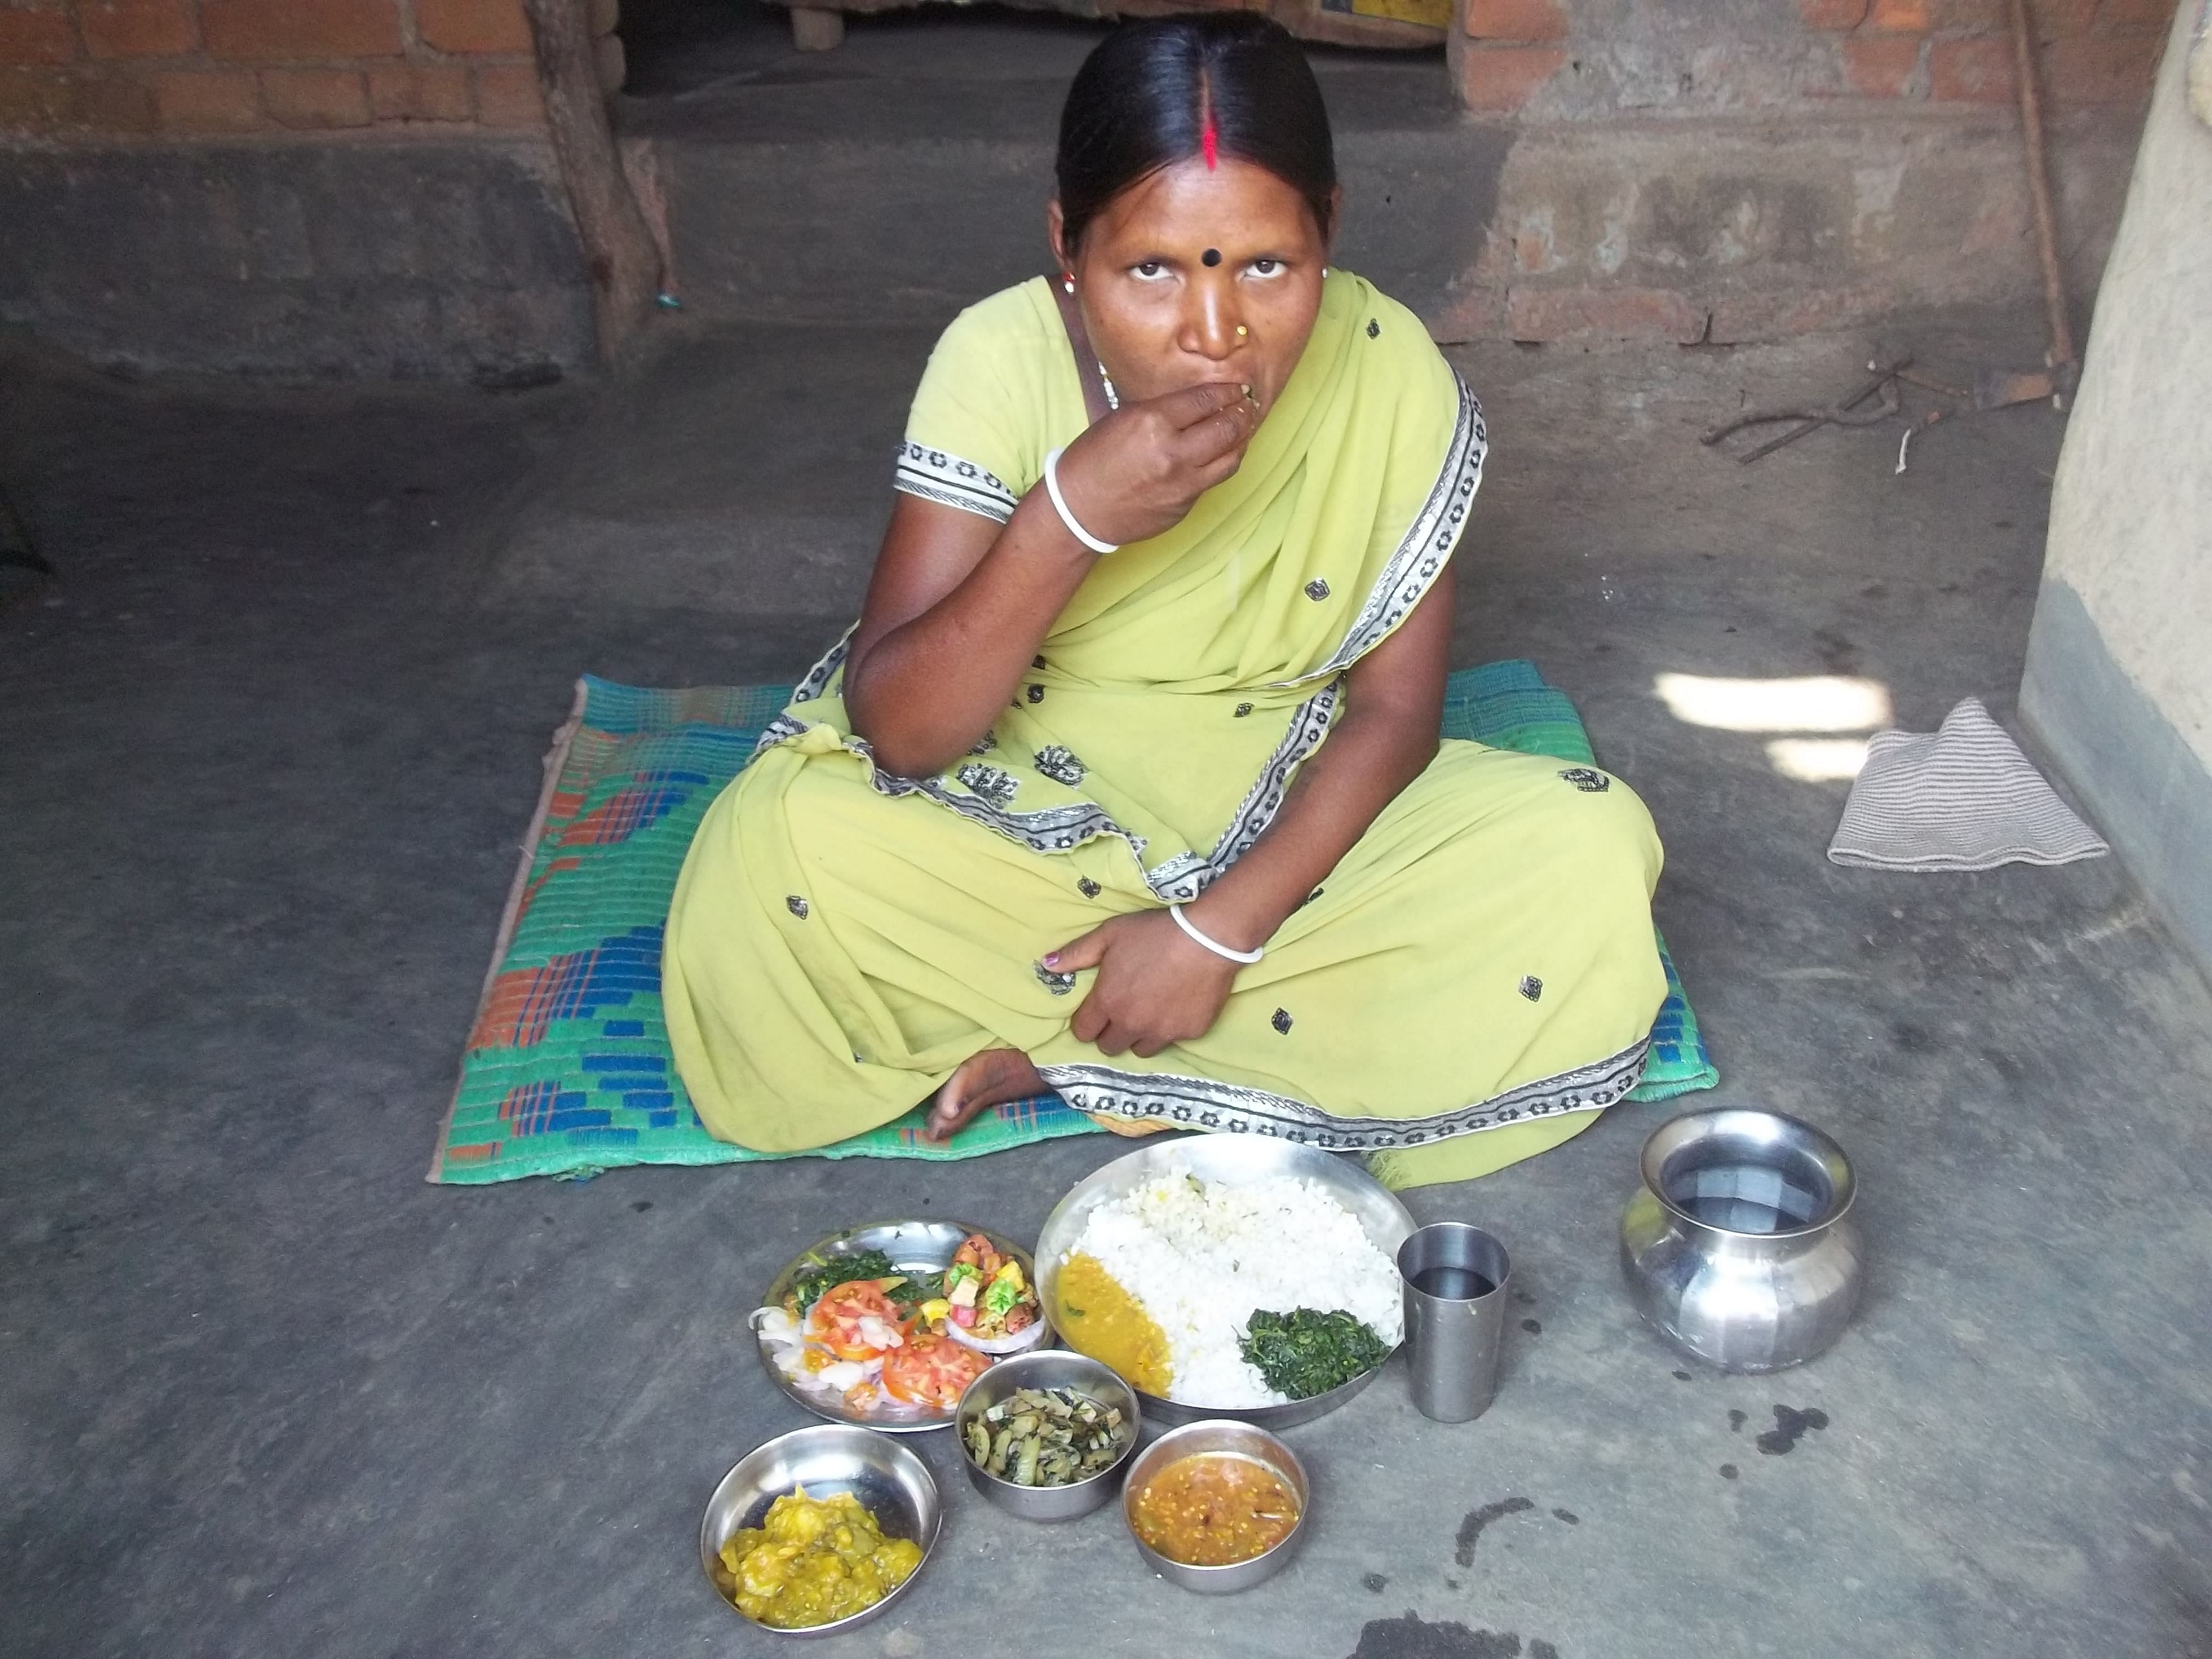 Women across 50 villages in Deoghar district of Jharkhand are cooking up the 'tiranga bhojan' or tricolour meal. (Credit: Saadia Azim\WFS)